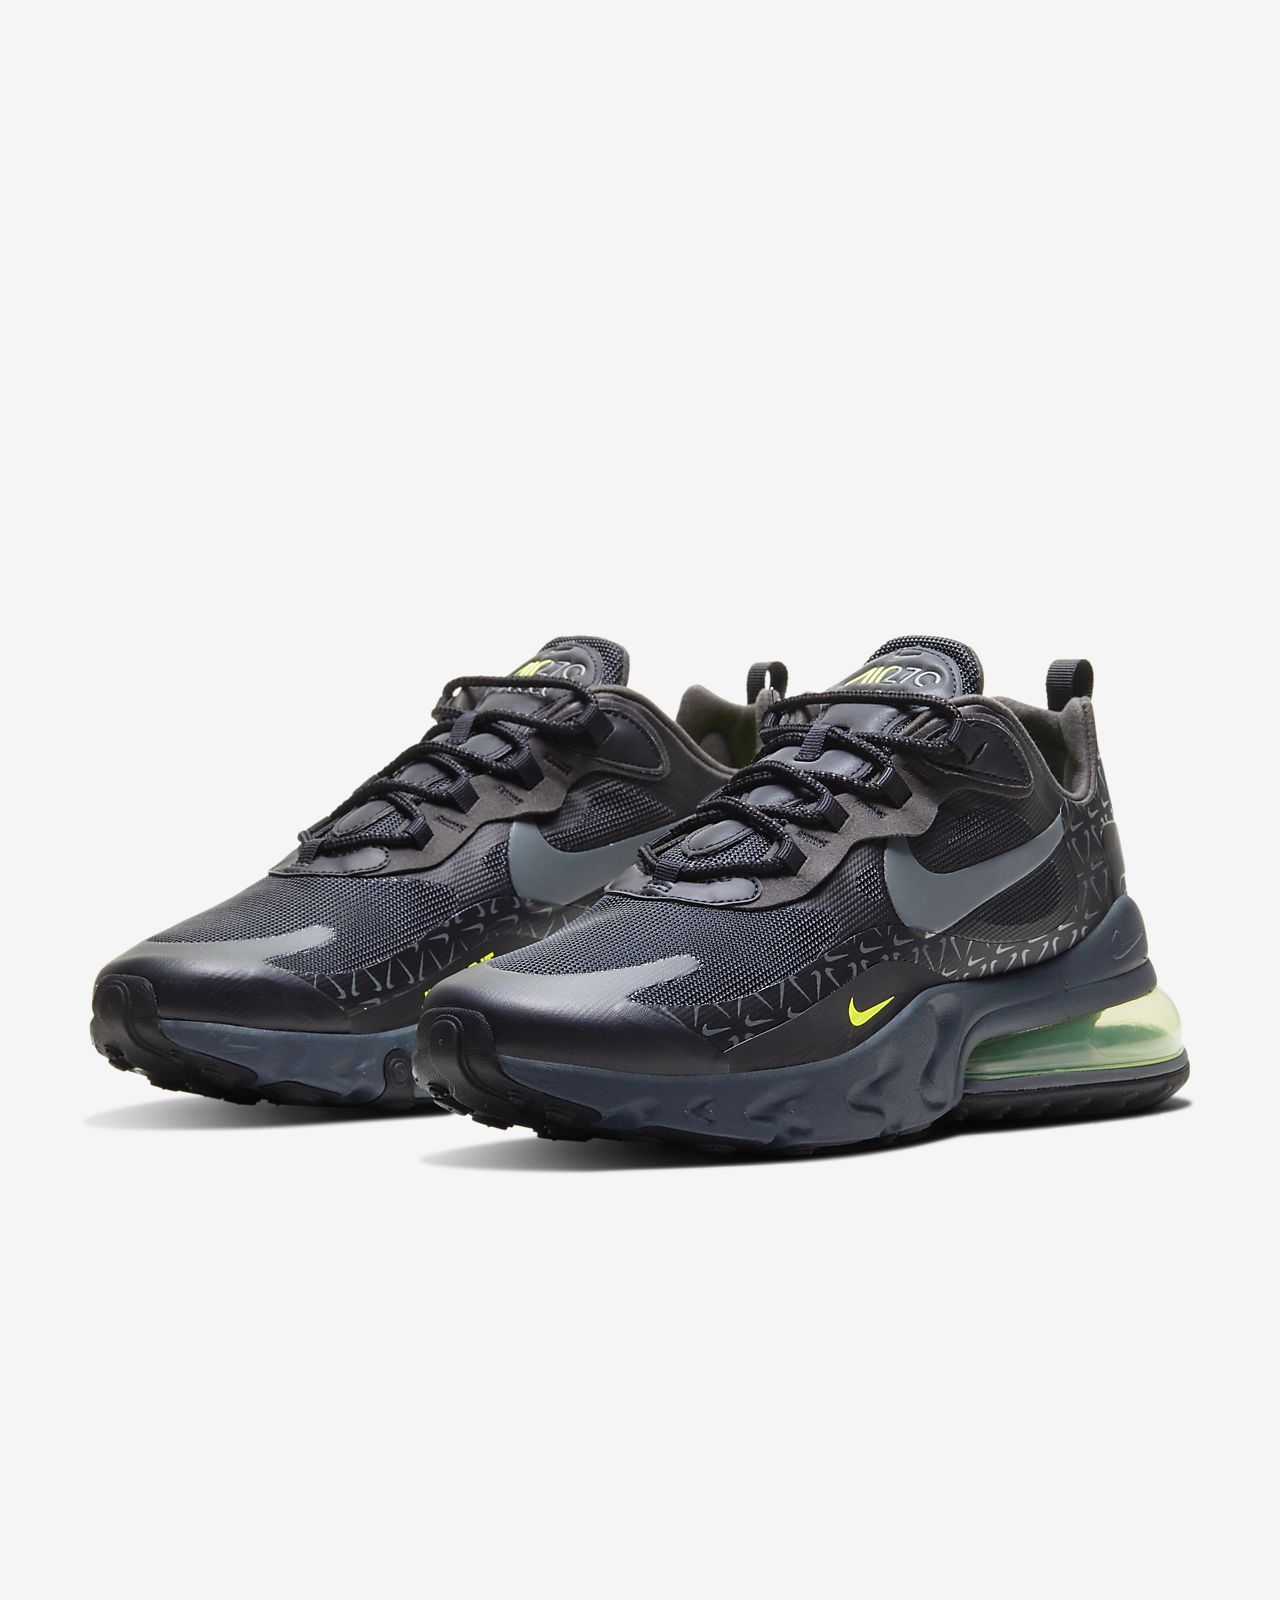 Air Max 270 By You Schuh | Kleidung | Nike air max, Air max